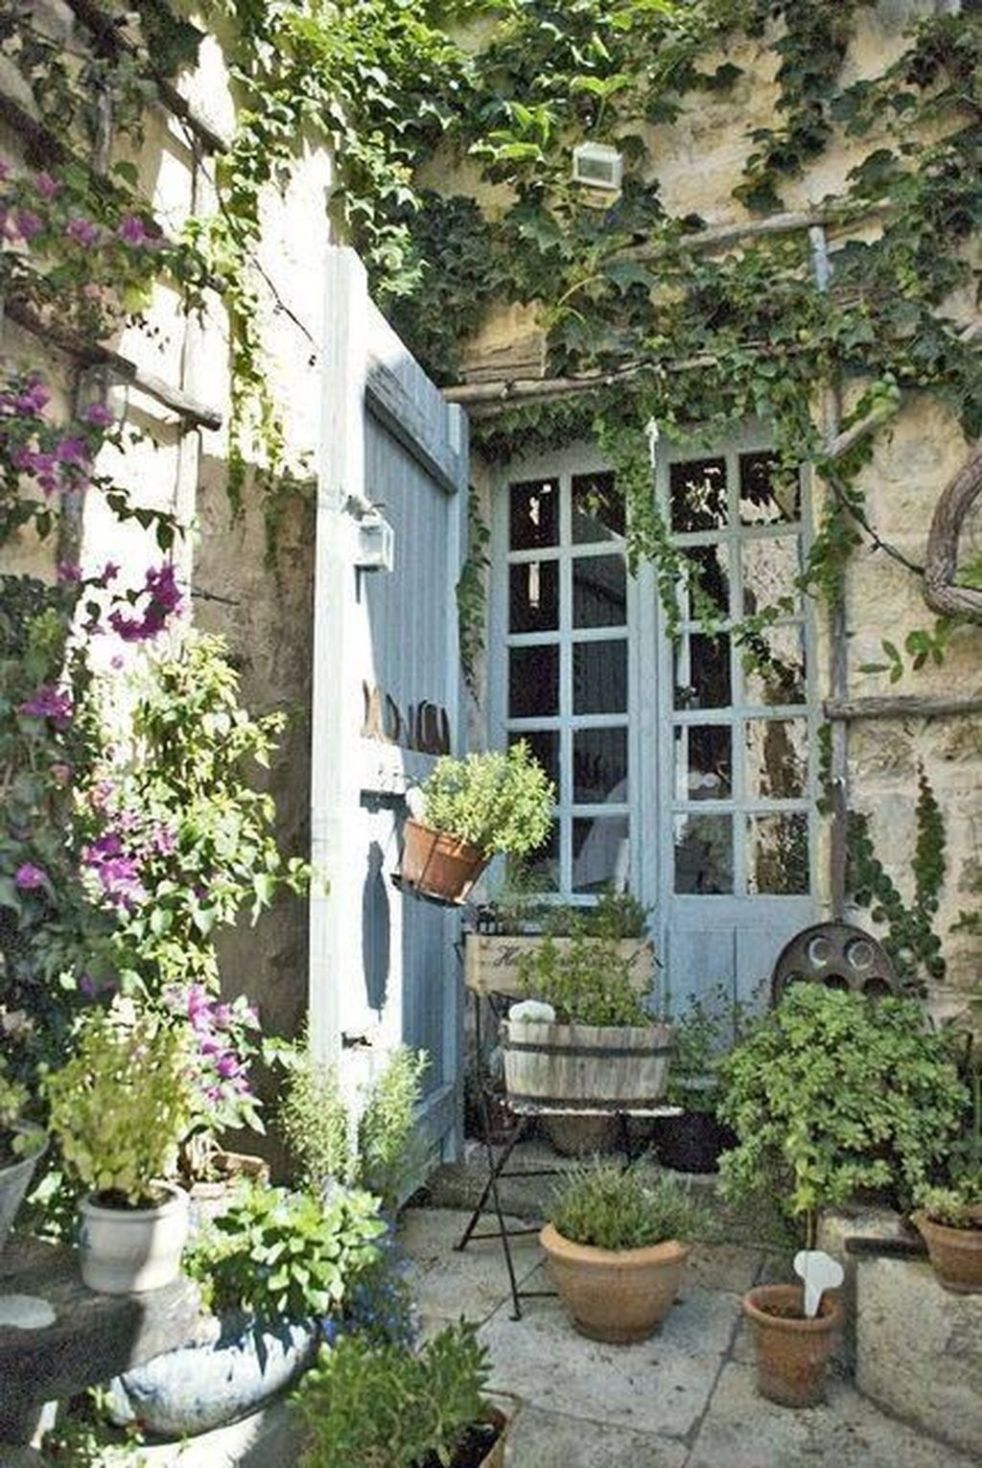 Inspiring French Country Garden Décor Ideas 7  French country